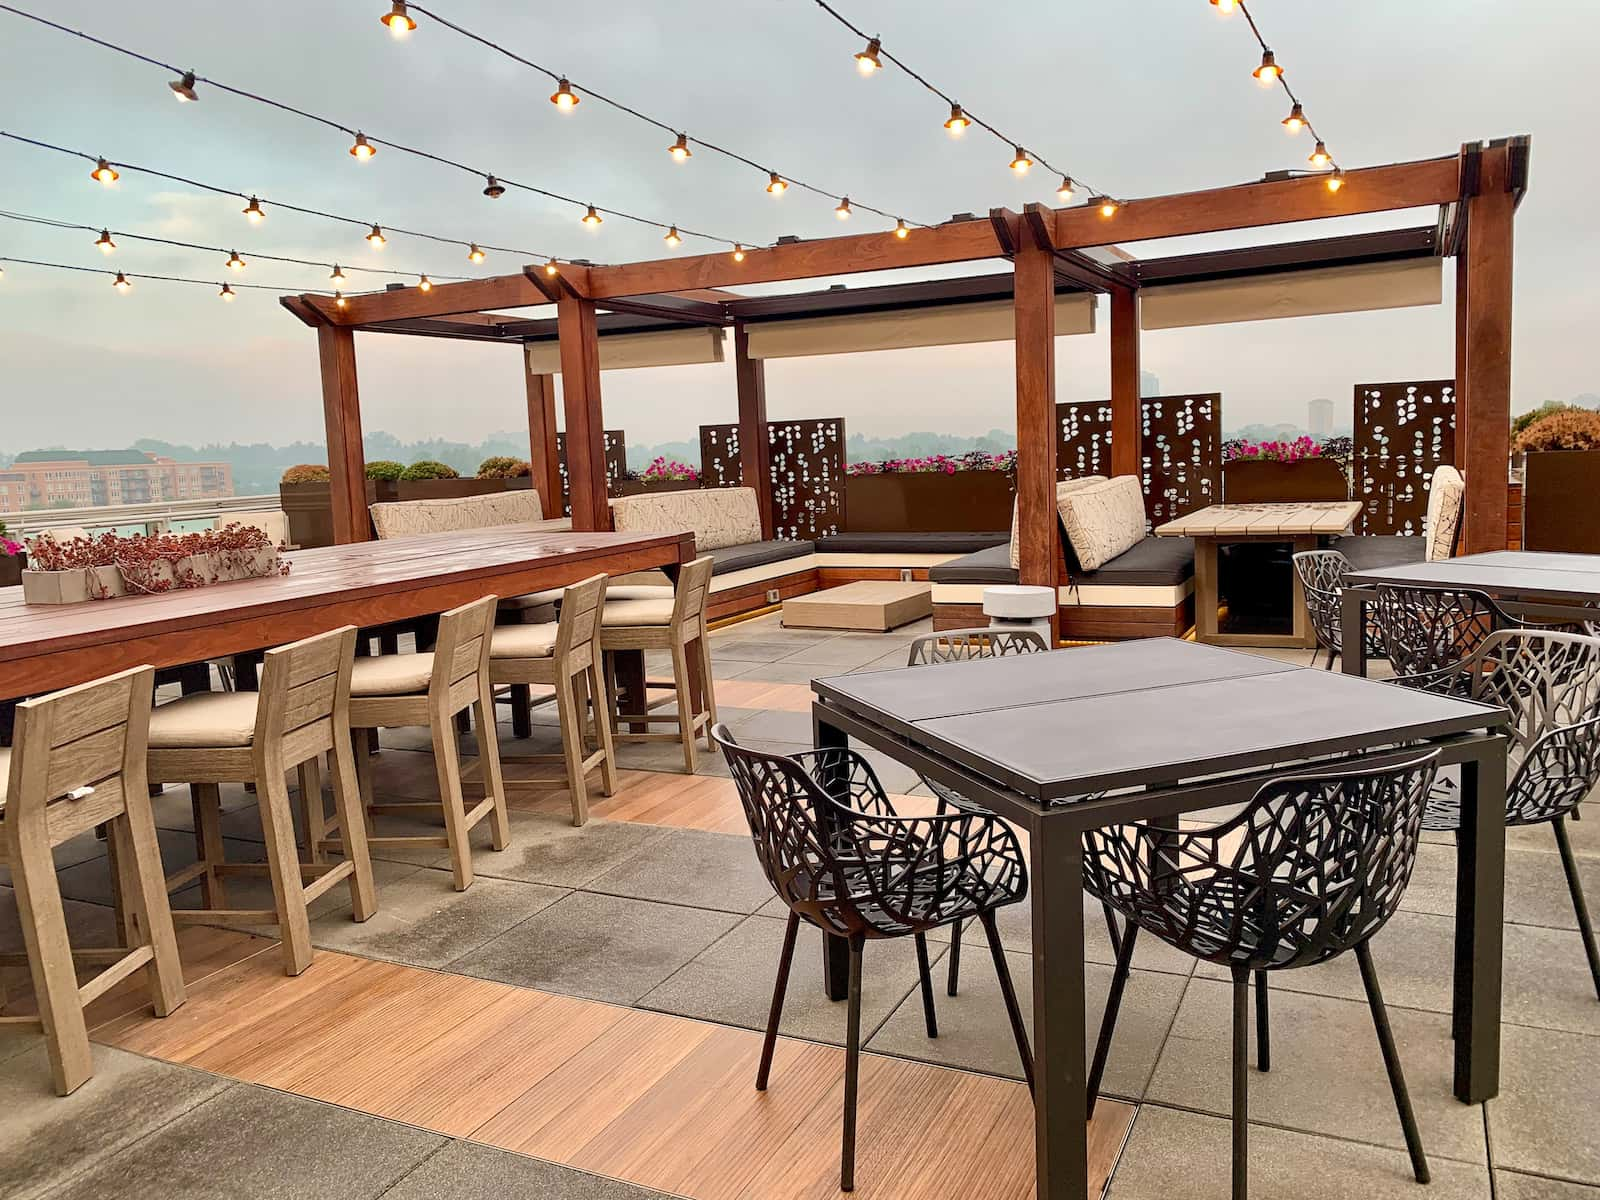 Rooftop Patio With Lighting And Seating Cherry Creek Denver CO